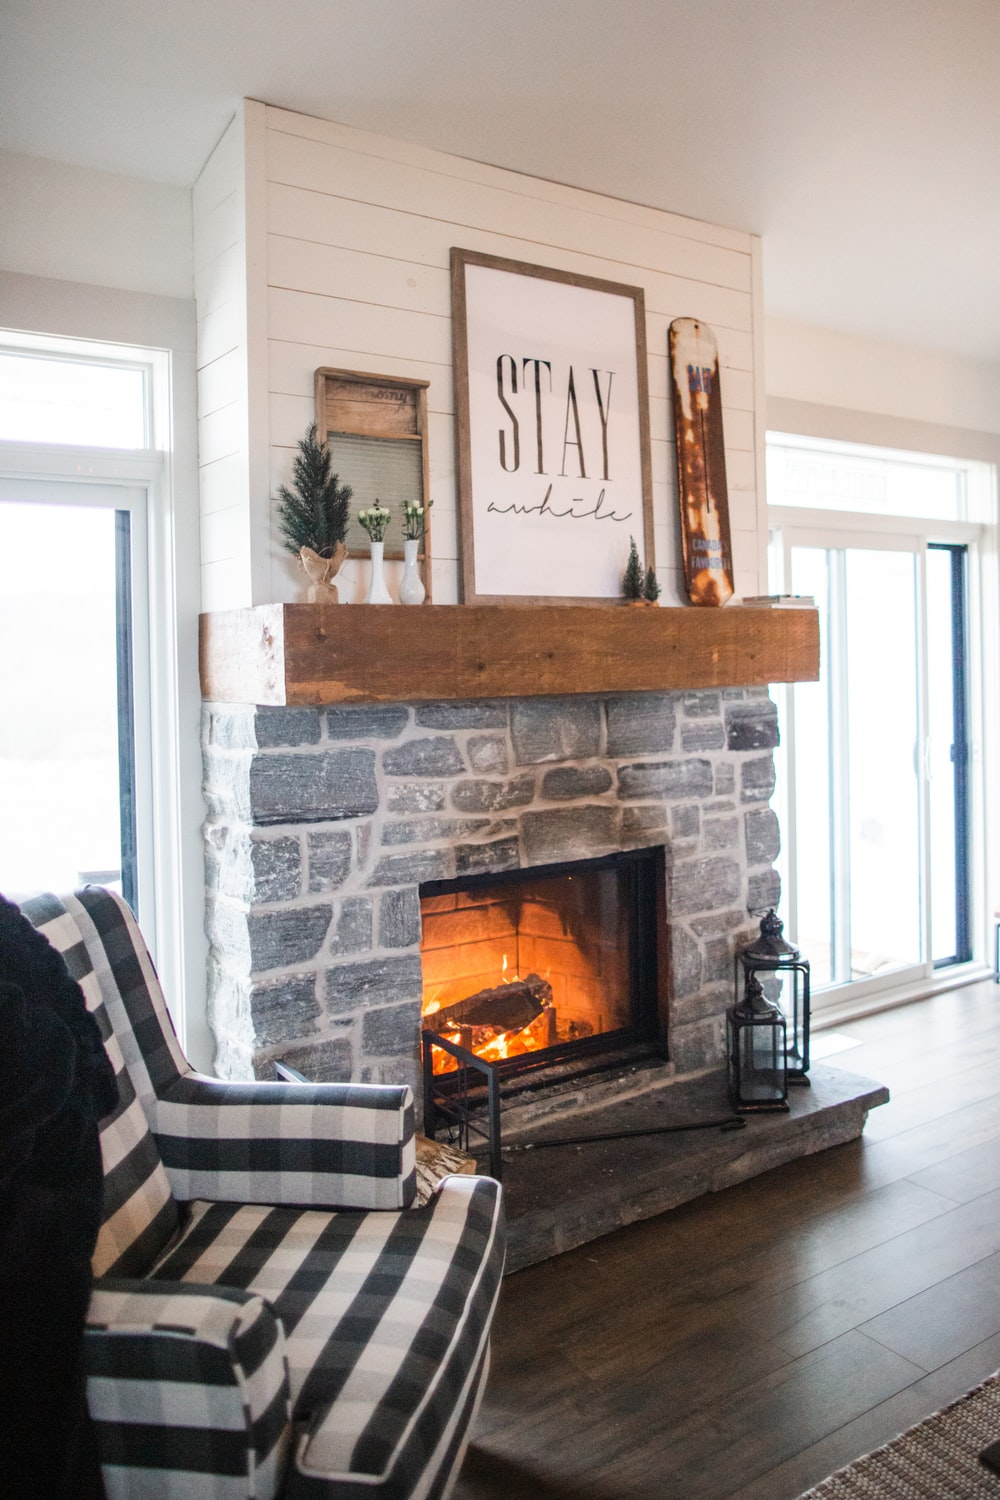 500 Fireplace Pictures Download Free Images On Unsplash